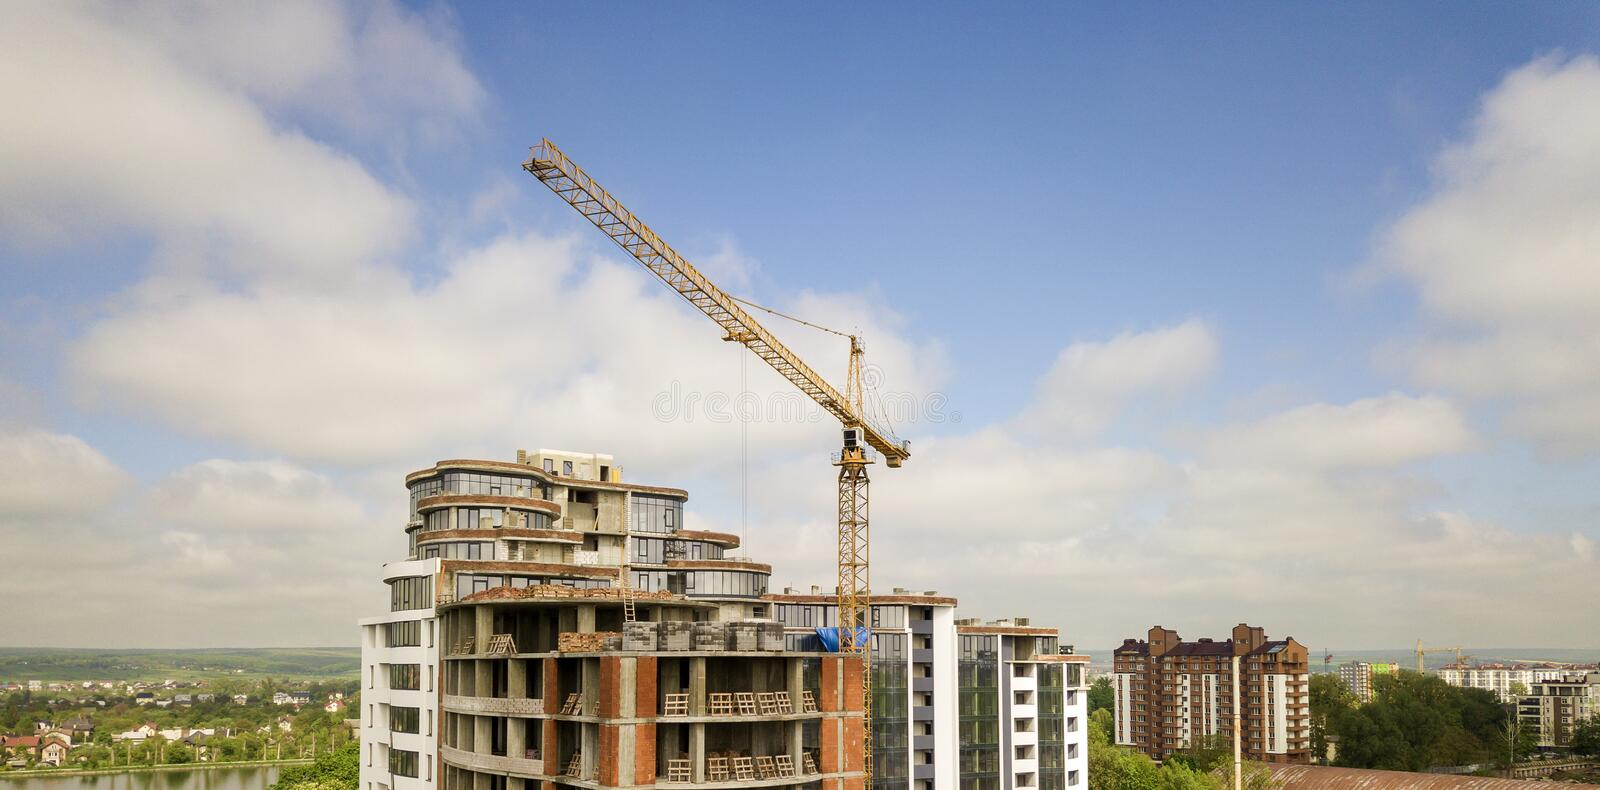 Apartment or office tall building under construction. Brick walls, glass windows, scaffolding and concrete support pillars. Tower. Crane on bright blue sky copy royalty free stock photography